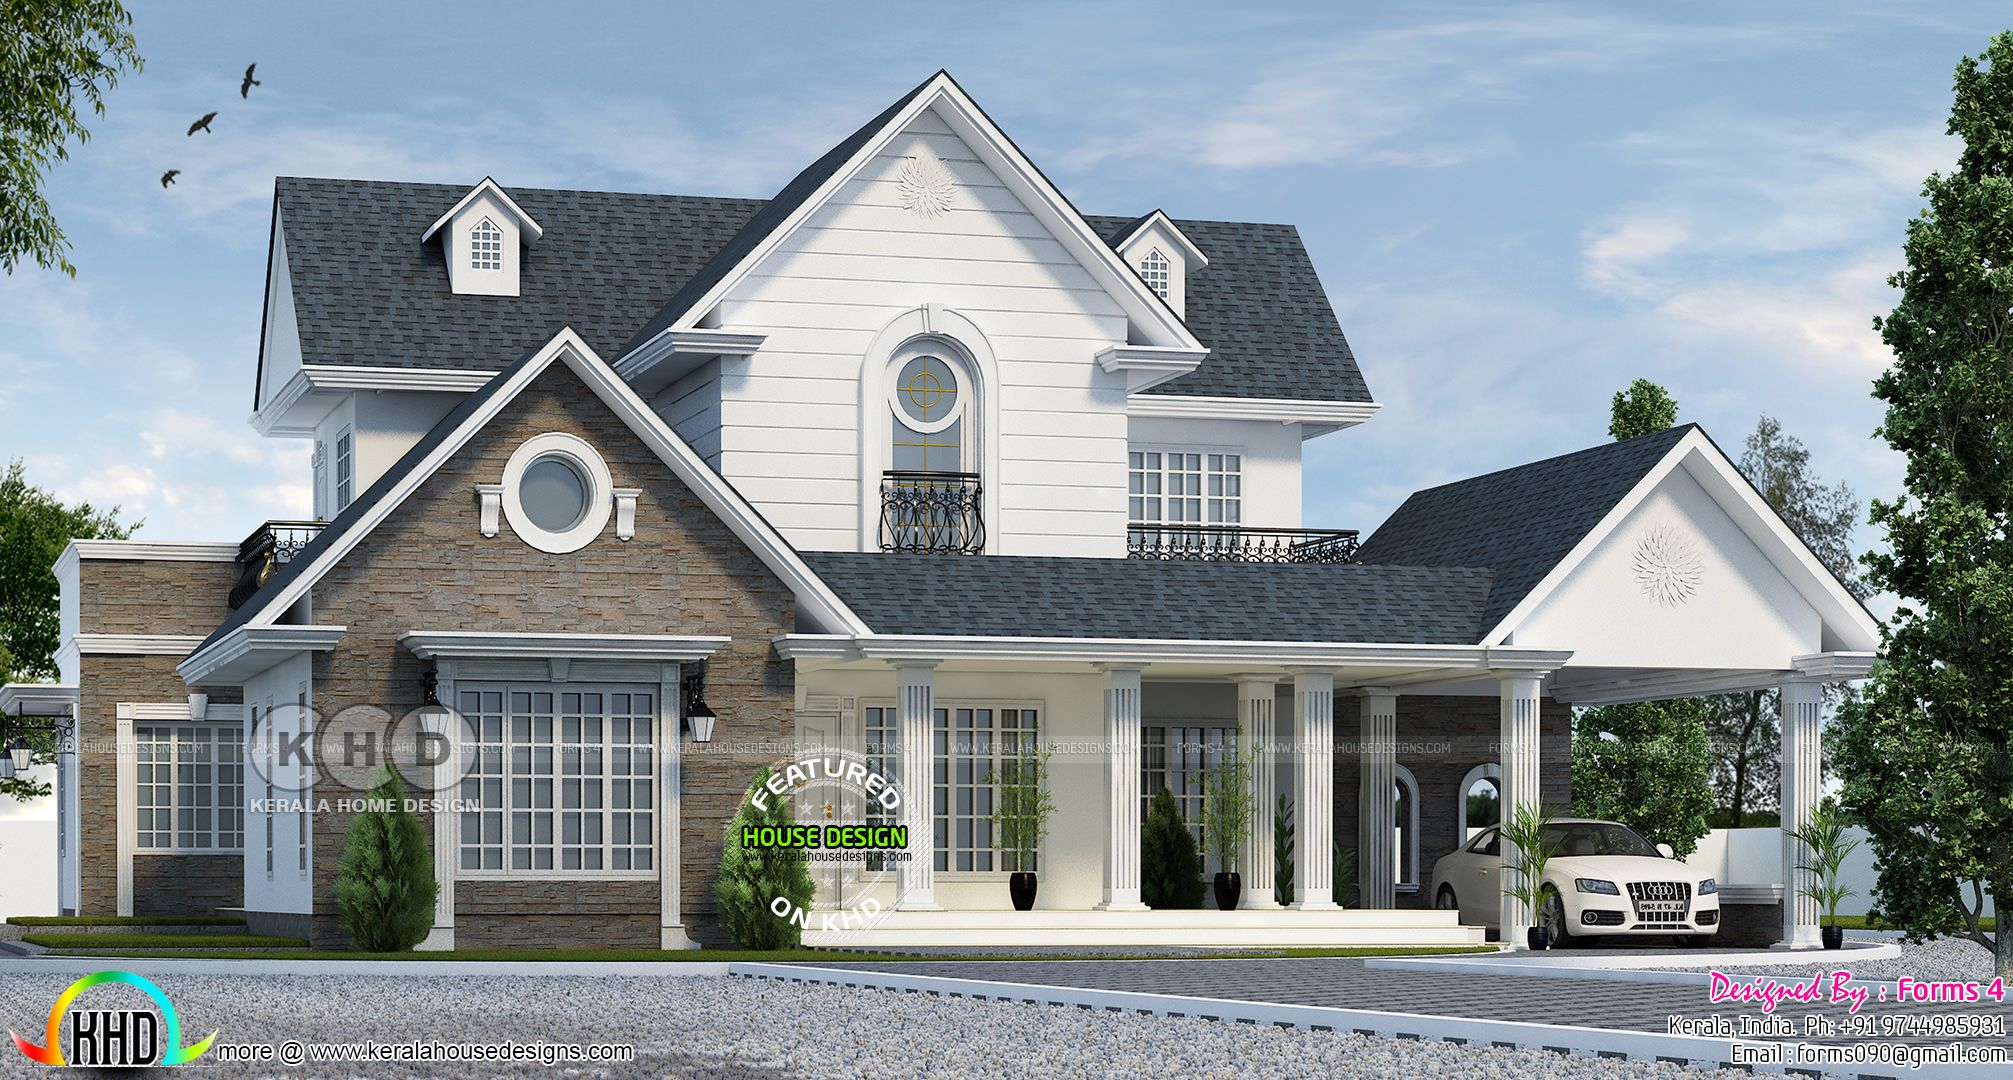 Amazing Colonial Style Home Architecturally Treated Colonial Style Homes Colonial House Plans Kerala House Design